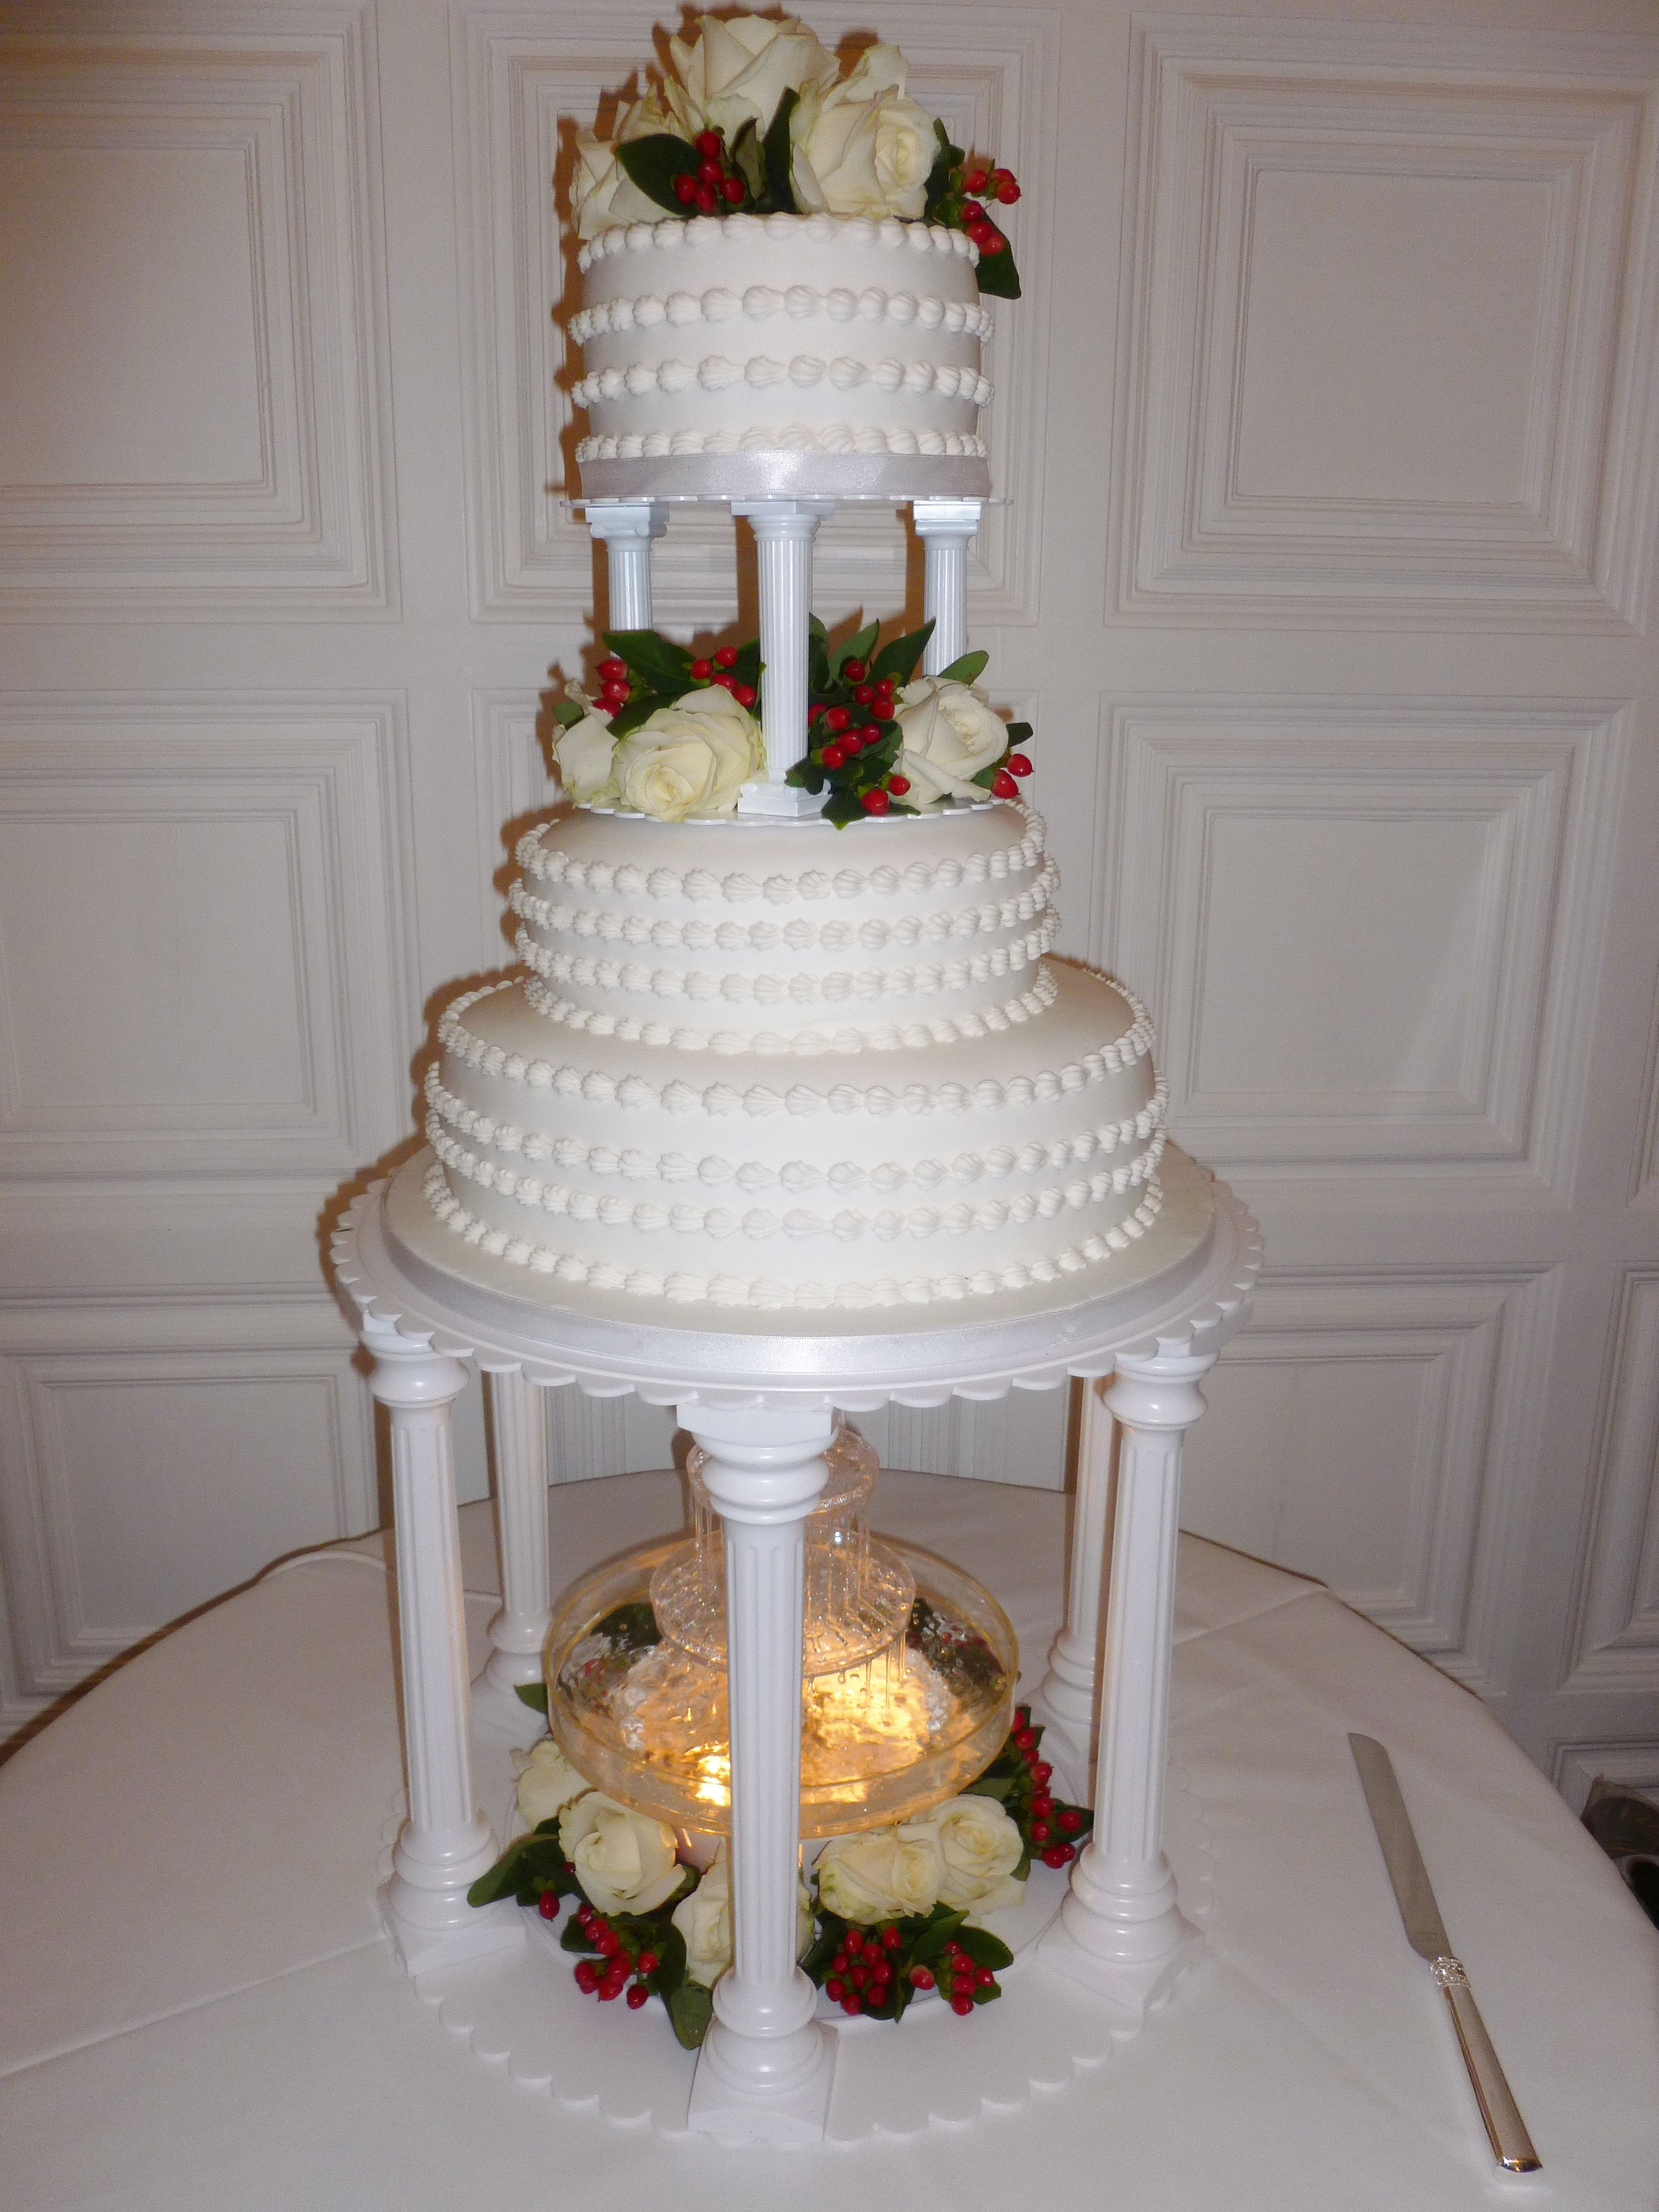 3 tiered iced wedding cake using Wilton Color glow water